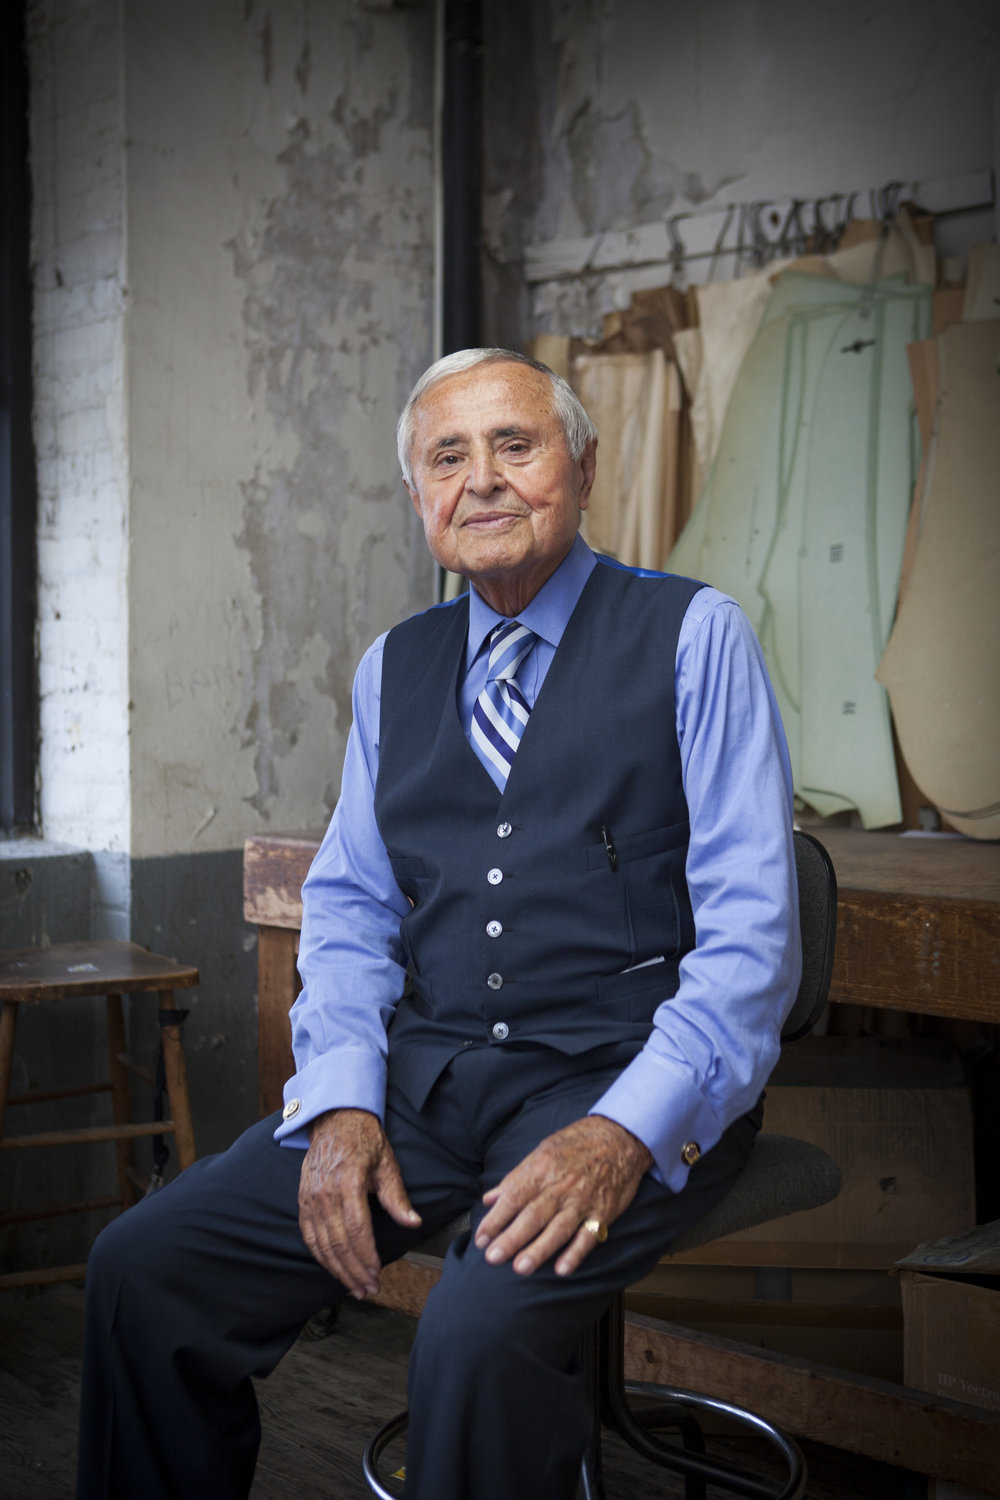 Martin Greenfield, Master Tailor and Holocaust Survivor